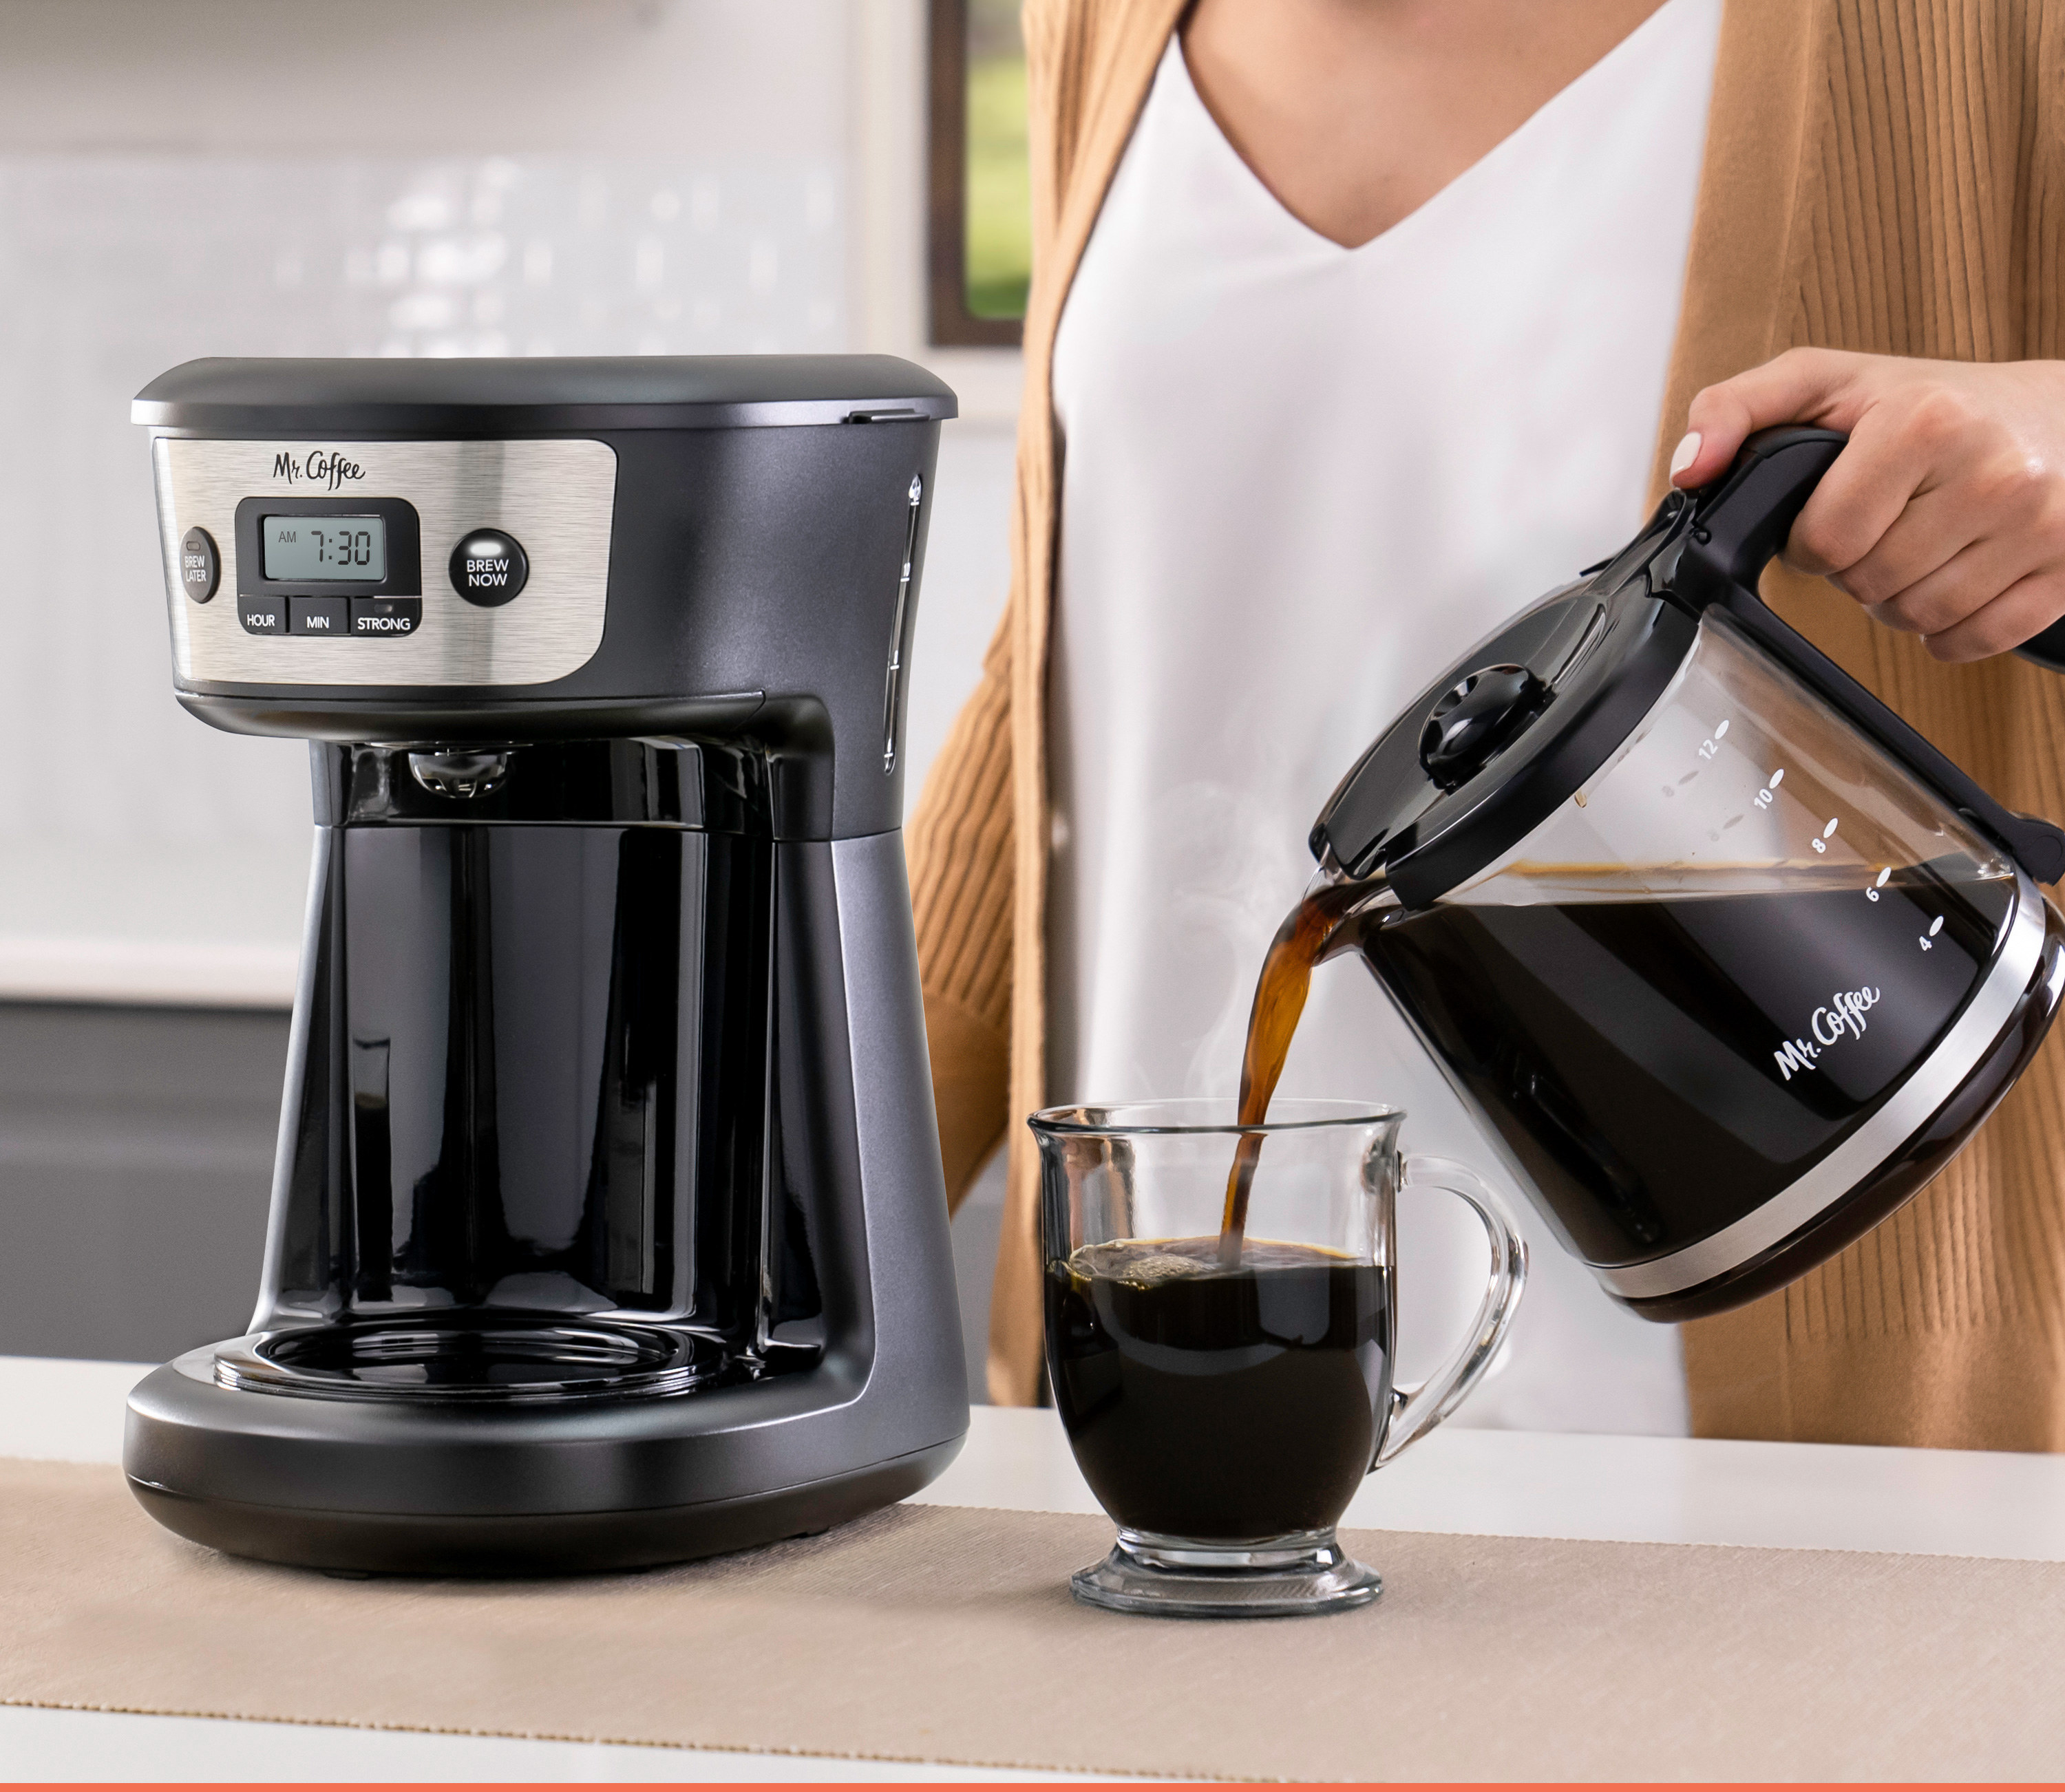 coffee maker on counter and woman pouring coffee from pot